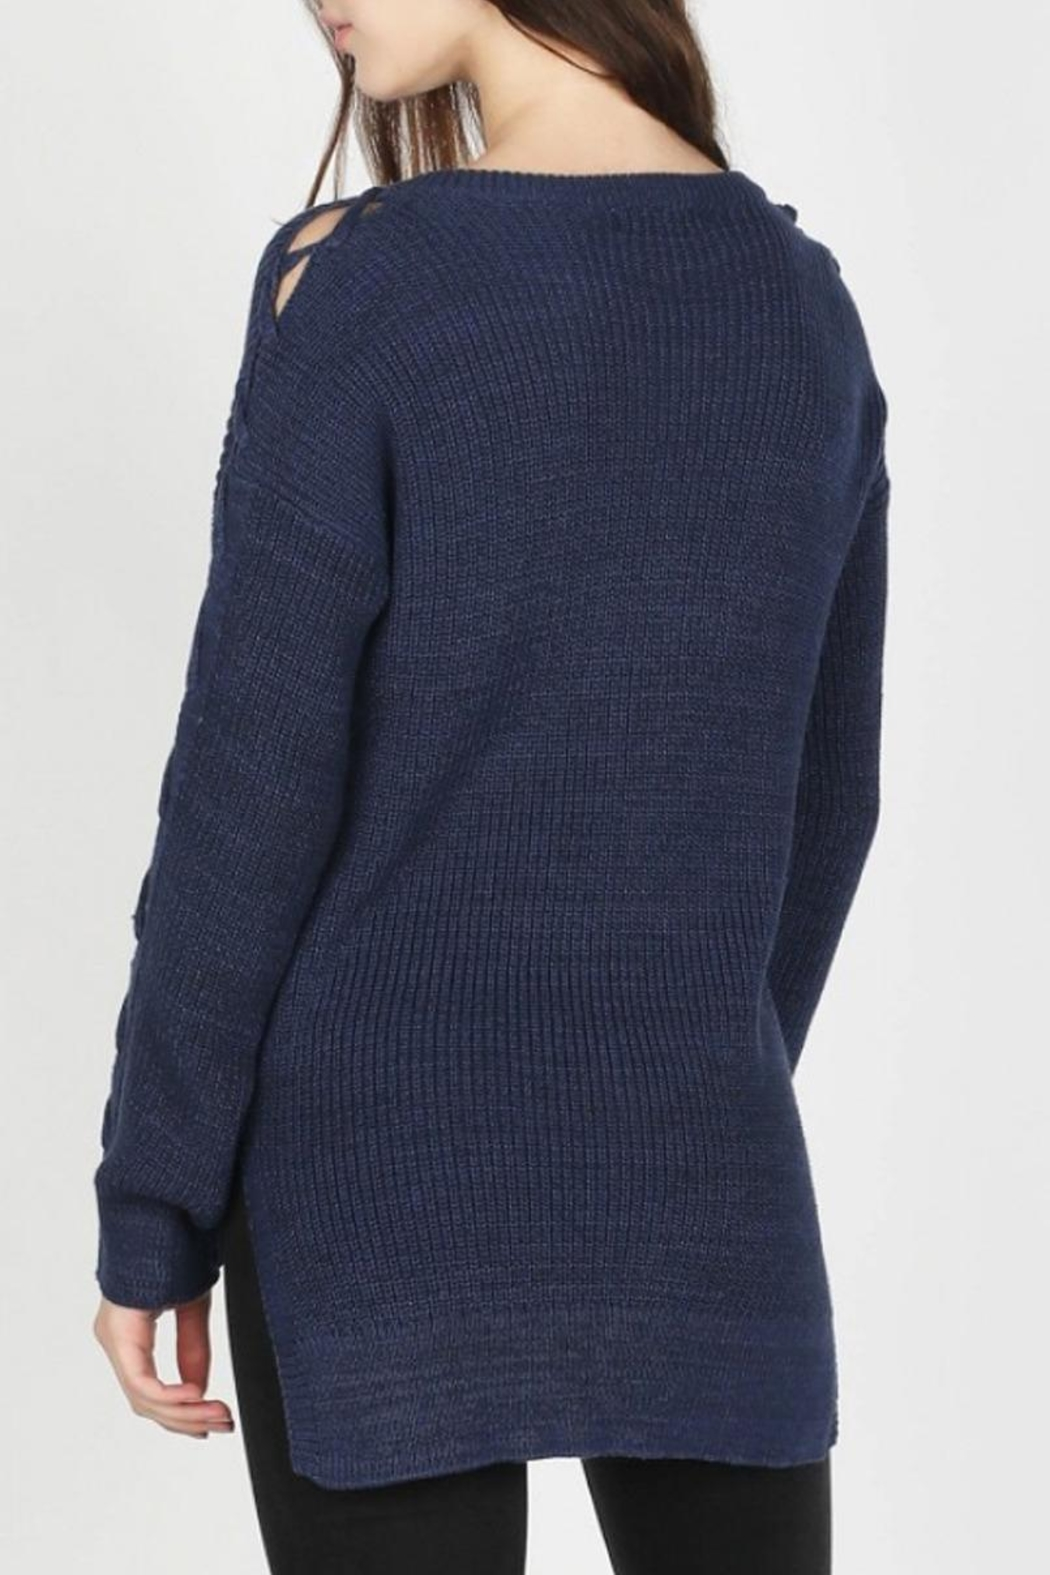 Skies Are Blue Lace-Up Sleeve Sweater - Side Cropped Image